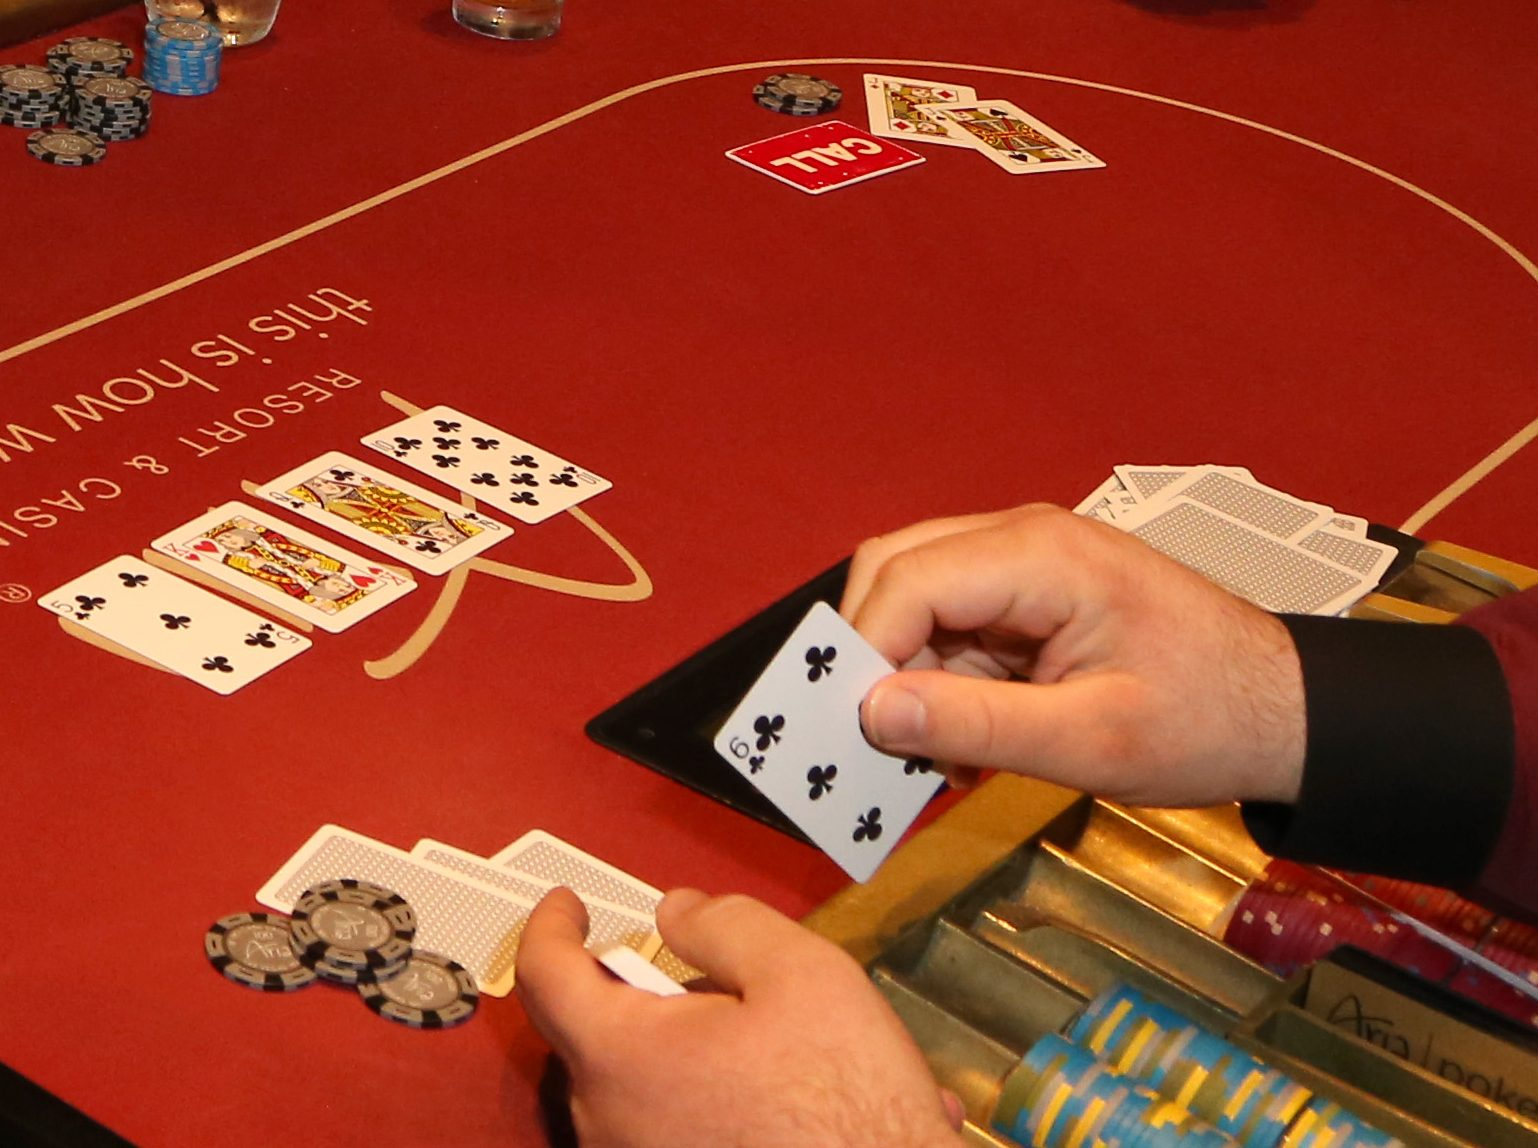 Fraud, Deceptions, And Downright Lies About Online Gambling Exposed